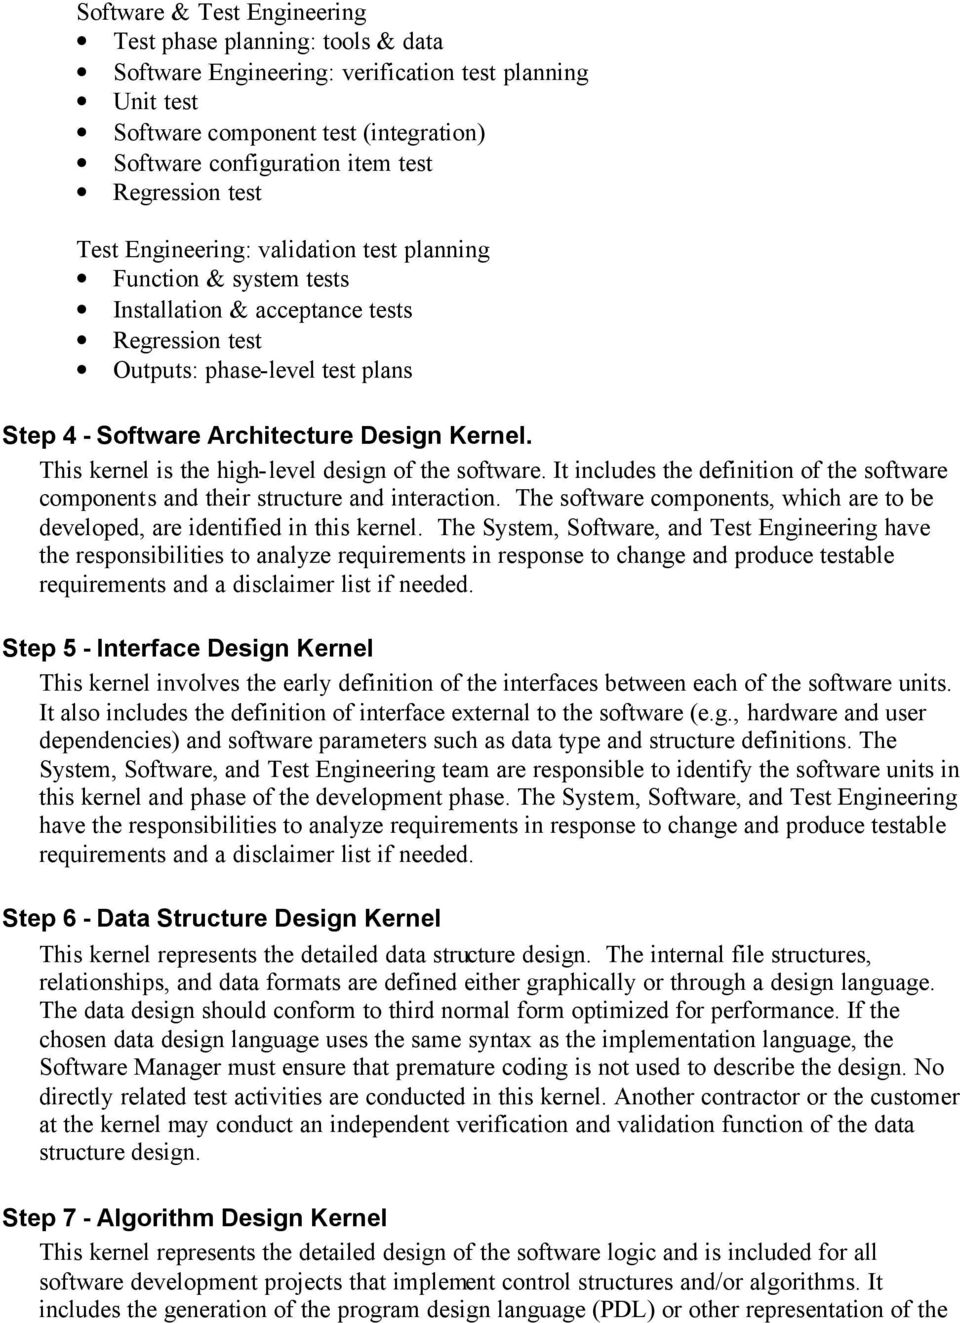 Design Kernel. This kernel is the high-level design of the software. It includes the definition of the software components and their structure and interaction.